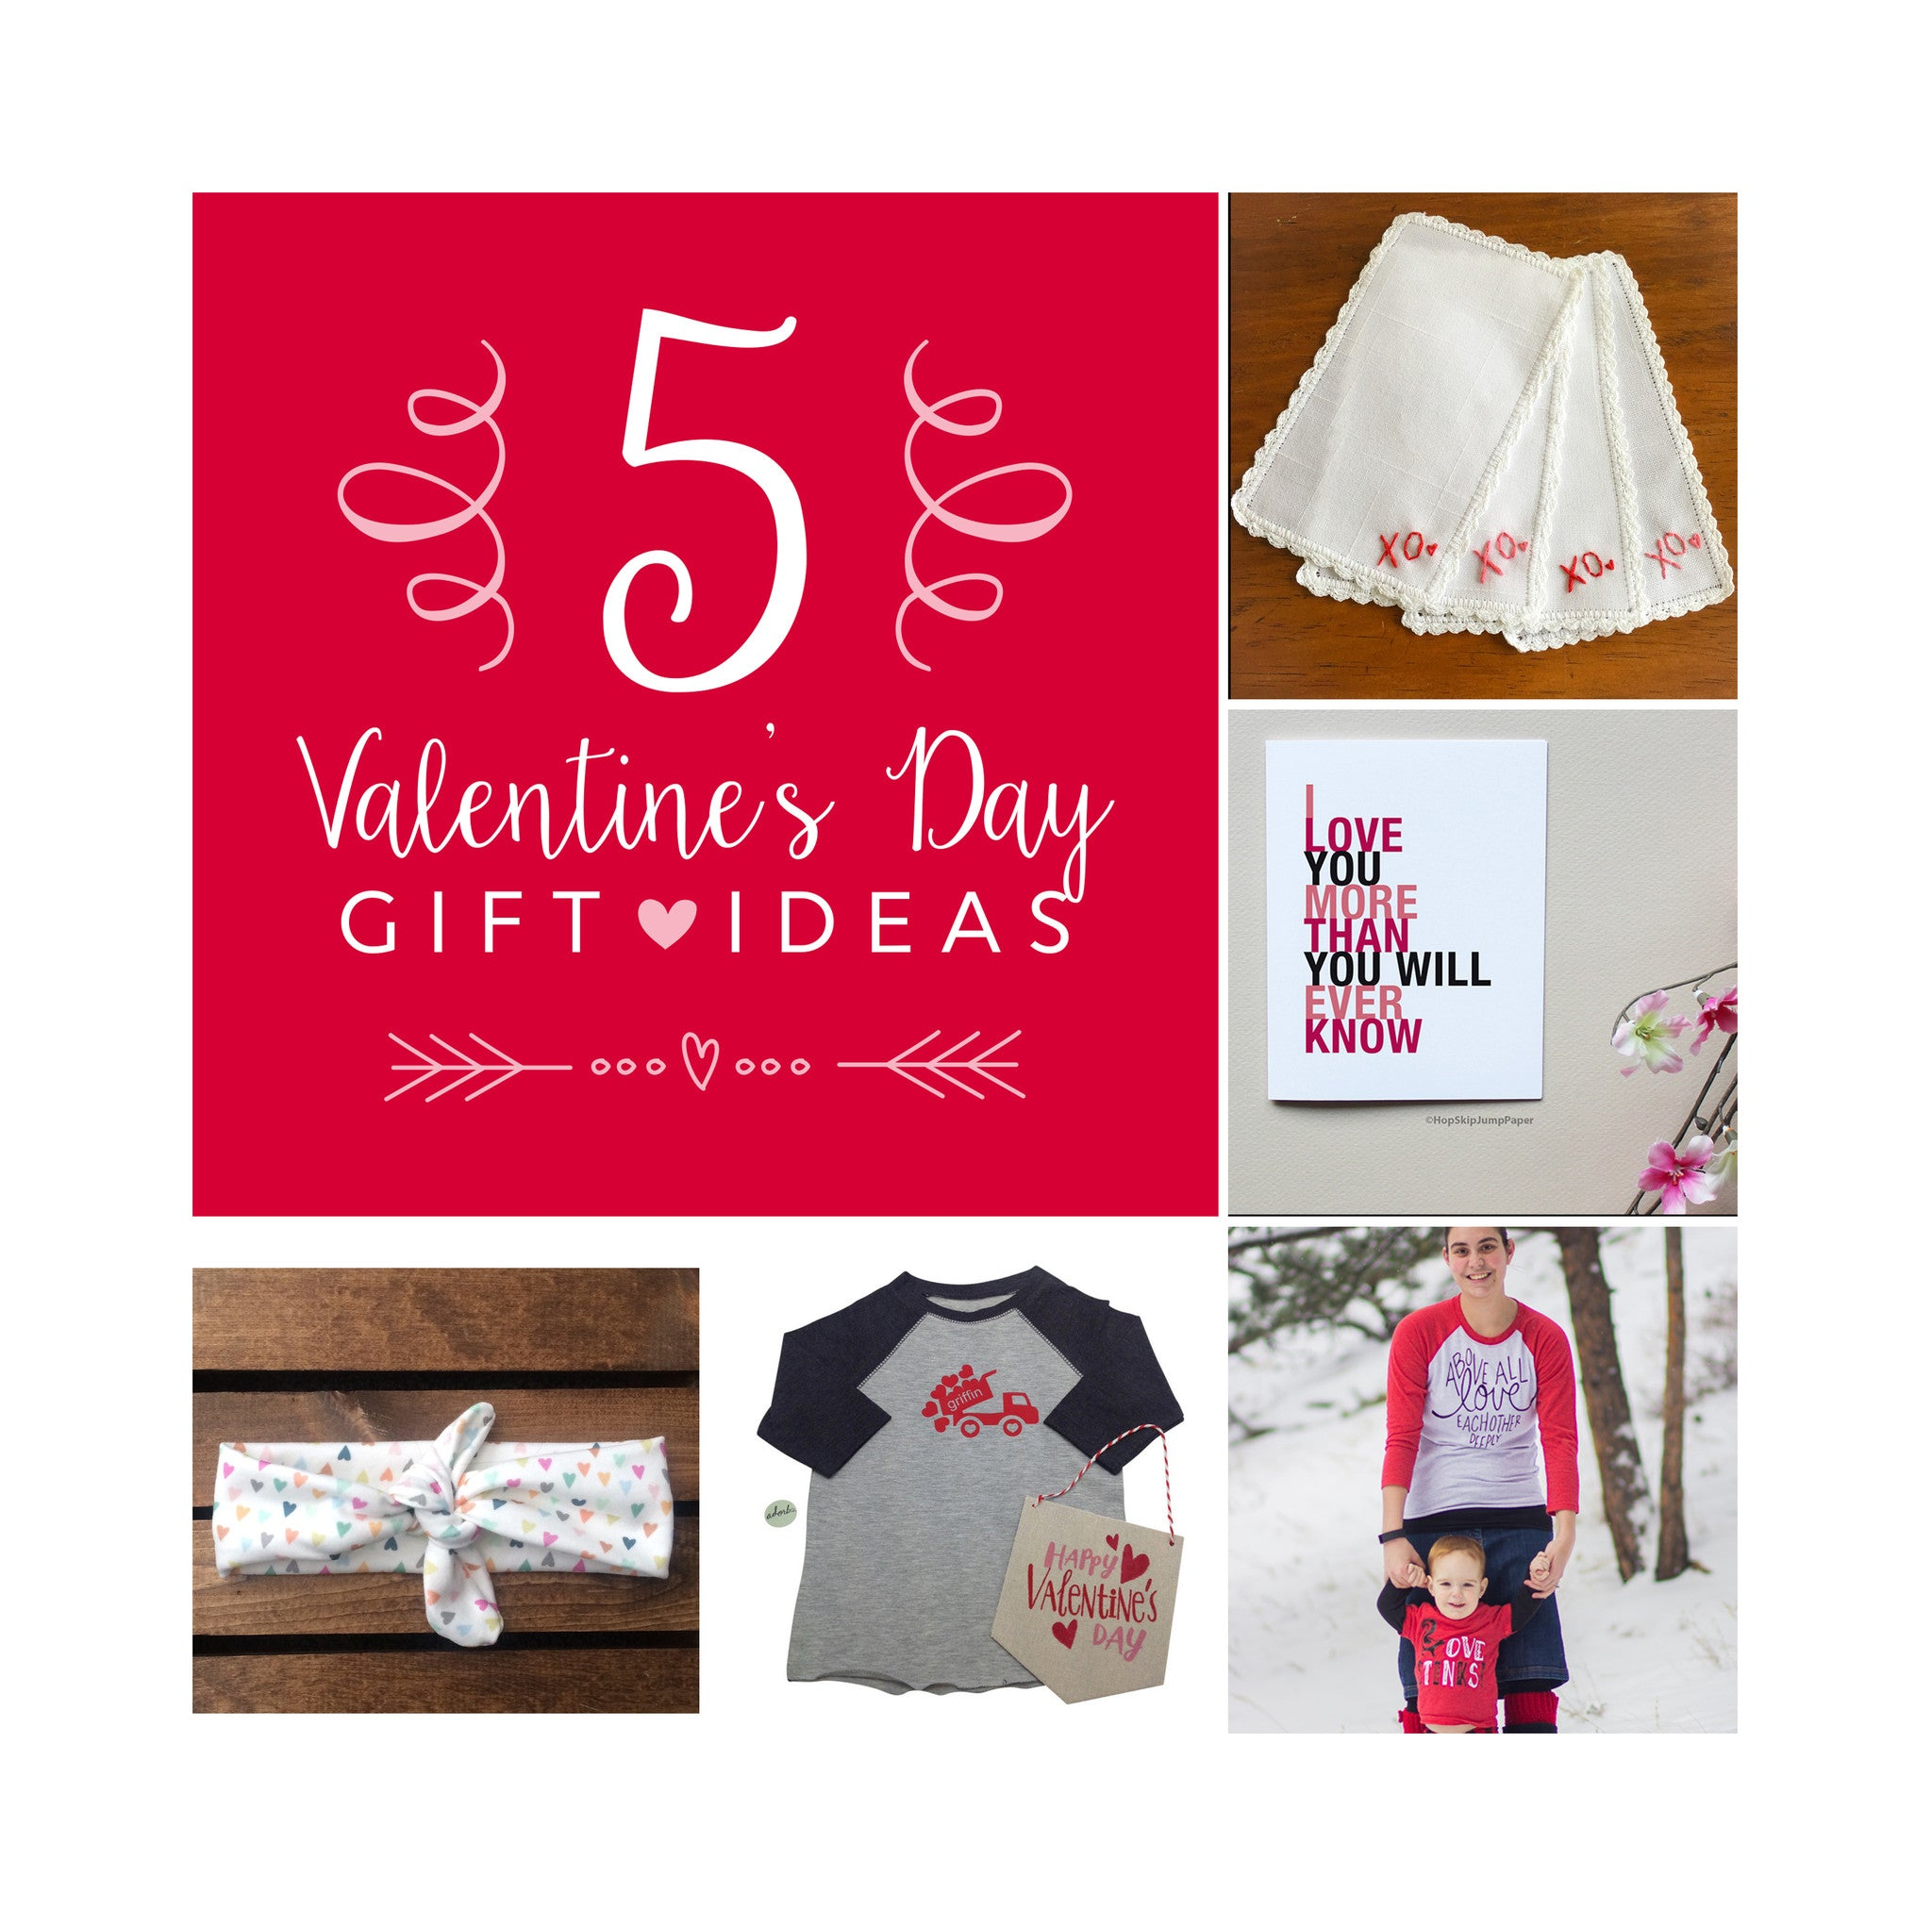 5 Extra-Special Valentine's Day Finds